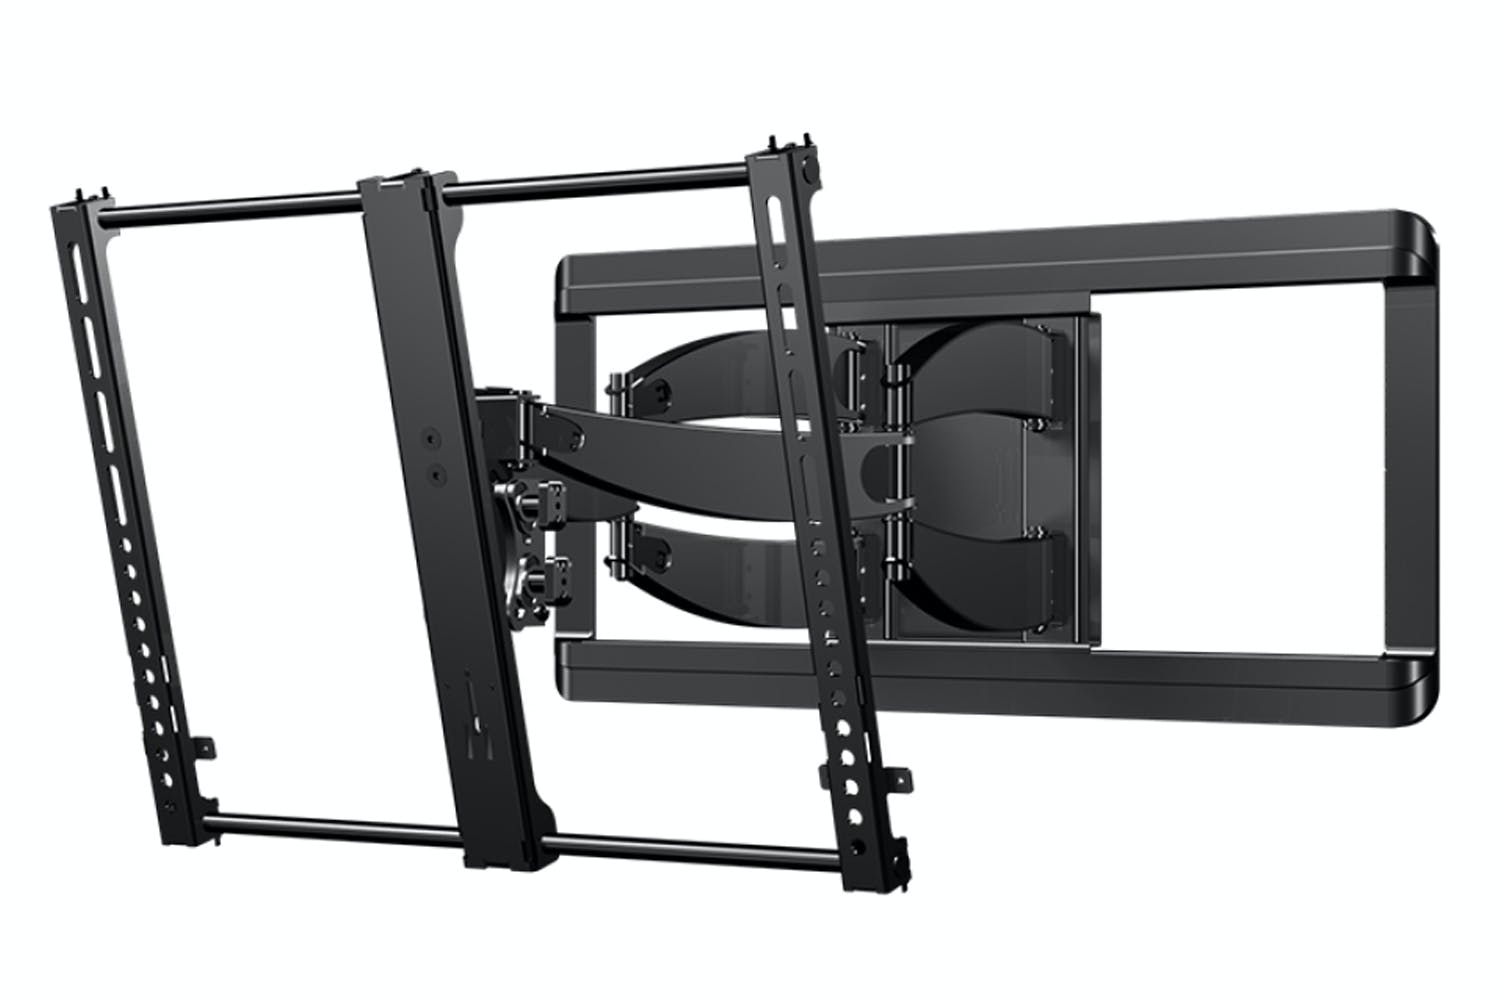 sanus full motion mount for 46 90 flat panel tvs vlf628 b2 ireland. Black Bedroom Furniture Sets. Home Design Ideas